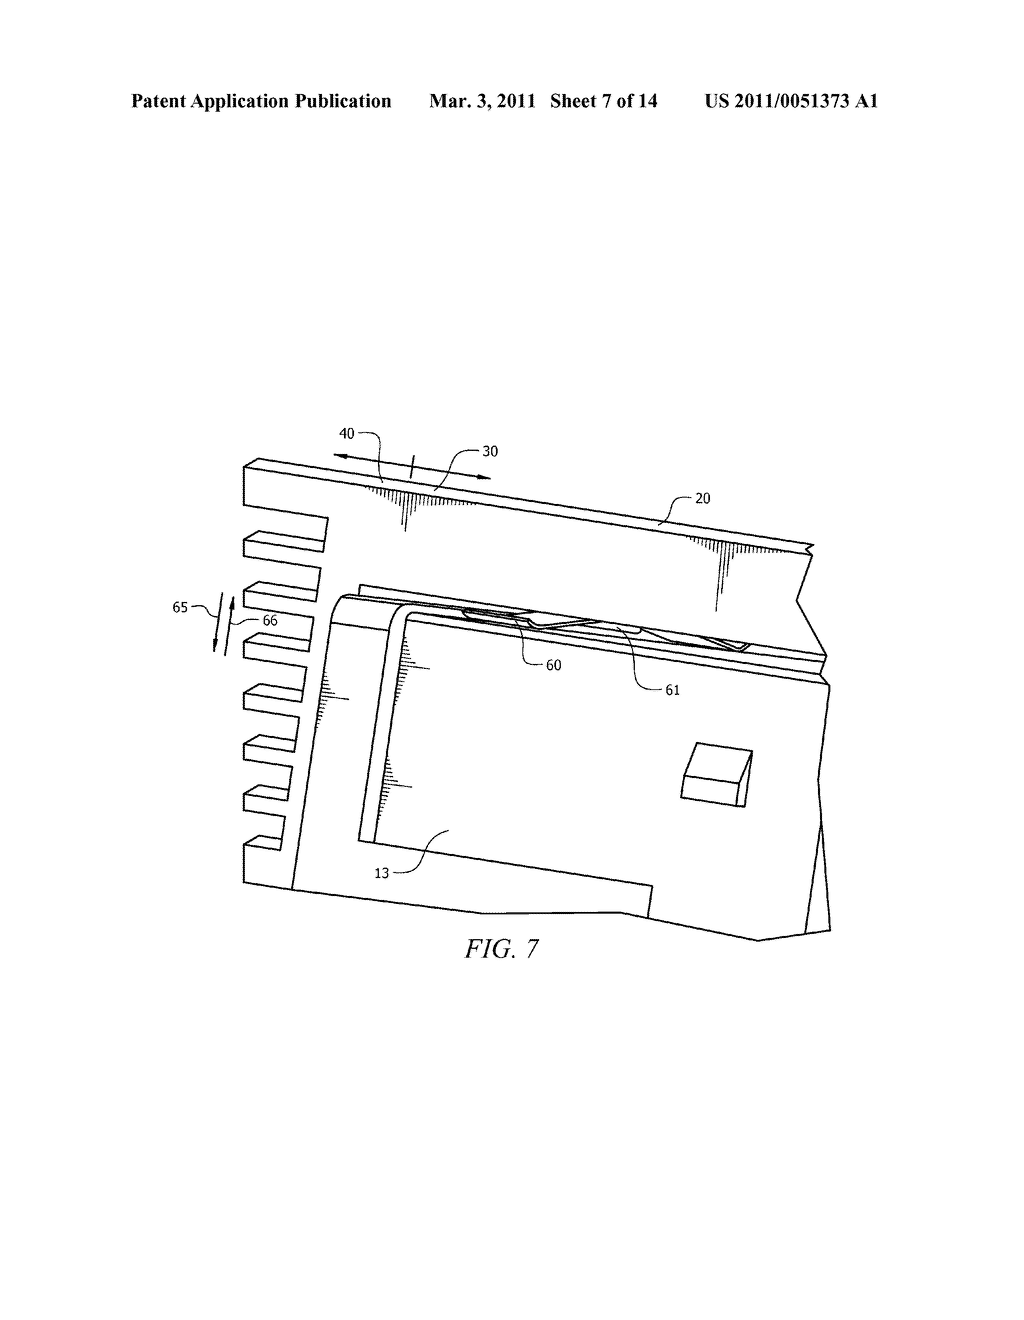 CAGE HAVING A HEAT SINK DEVICE SECURED THERETO IN A FLOATING ARRANGEMENT THAT ENSURES THAT CONTINUOUS CONTACT IS MAINTAINED BETWEEN THE HEAT SINK DEVICE AND A PARALLEL OPTICAL COMMUNICATIONS DEVICE SECURED TO THE CAGE - diagram, schematic, and image 08